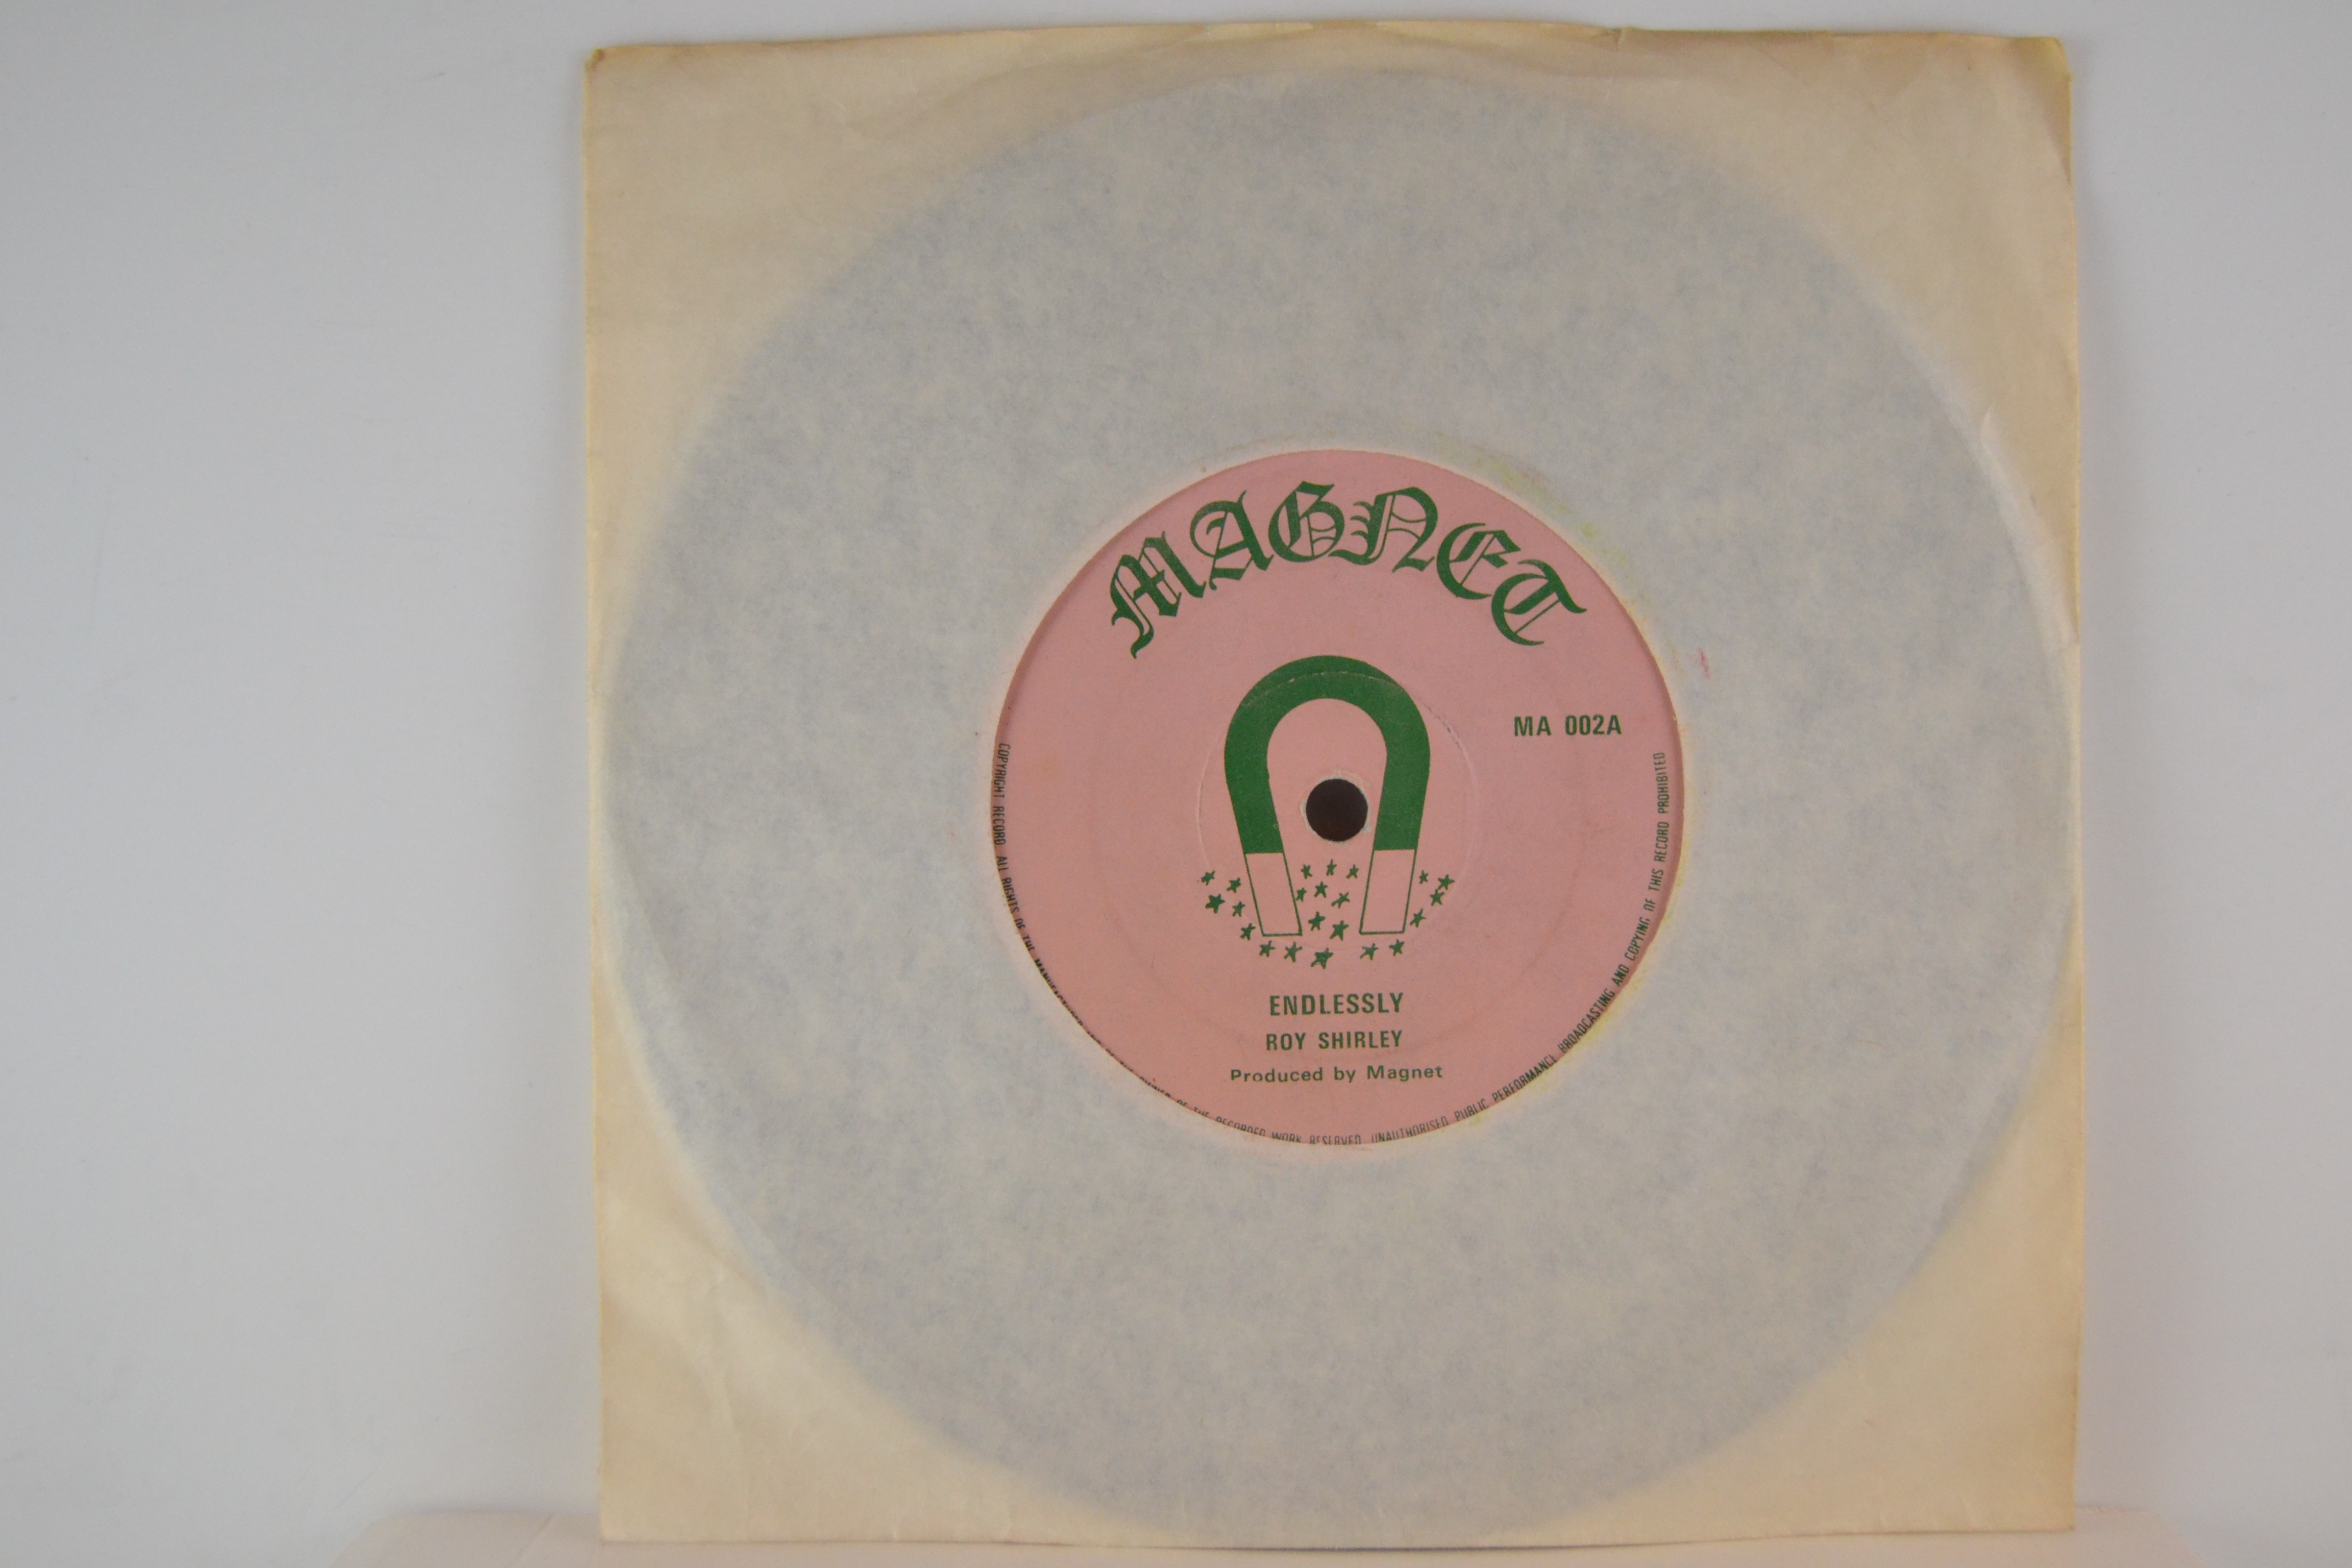 ROY SHIRLEY : Endlessly / Put your sweet lips